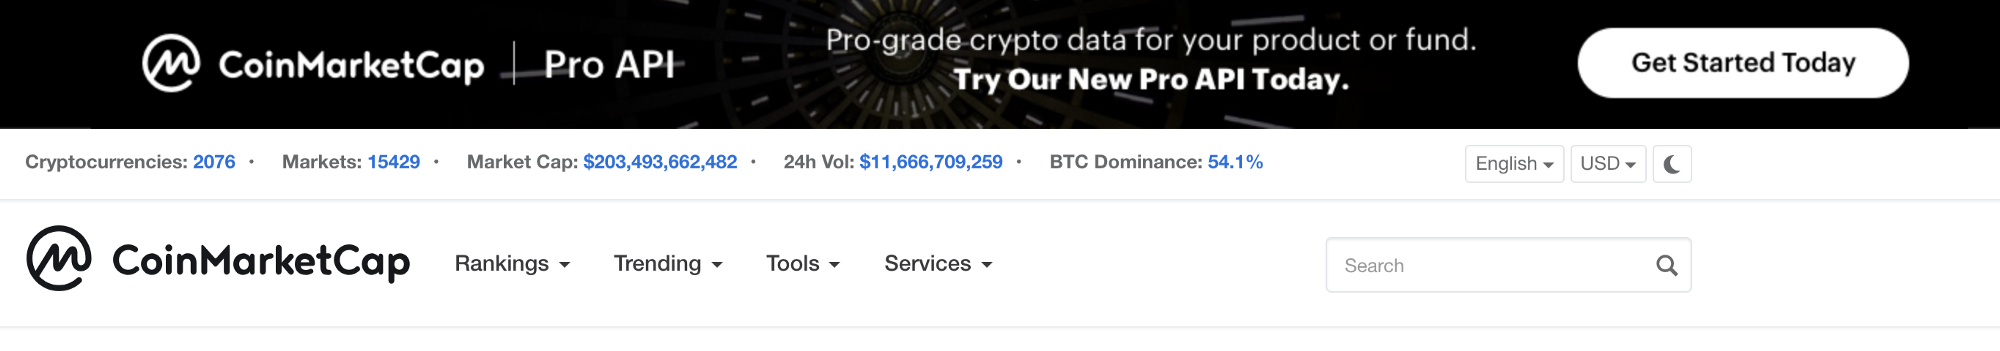 Image 7: Top banner on CoinMarketCap promoting in-house product, the Pro API